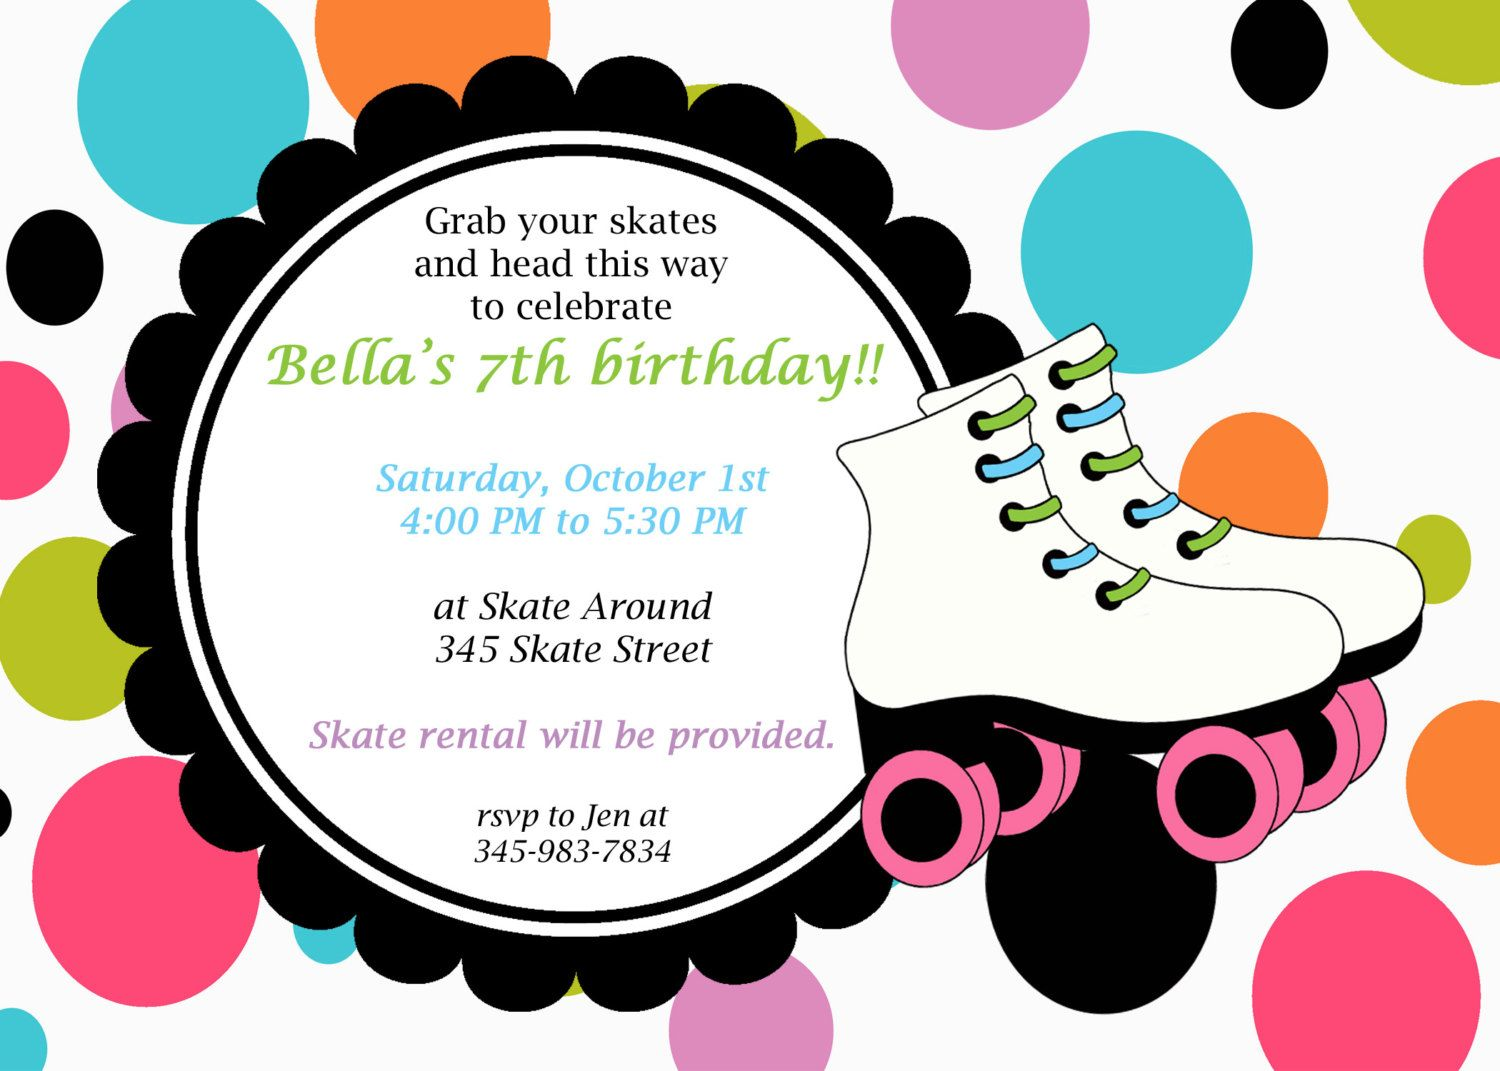 roller skating party invitation template party ideas roller skating printable birthday invitations for your party nice party invitation template